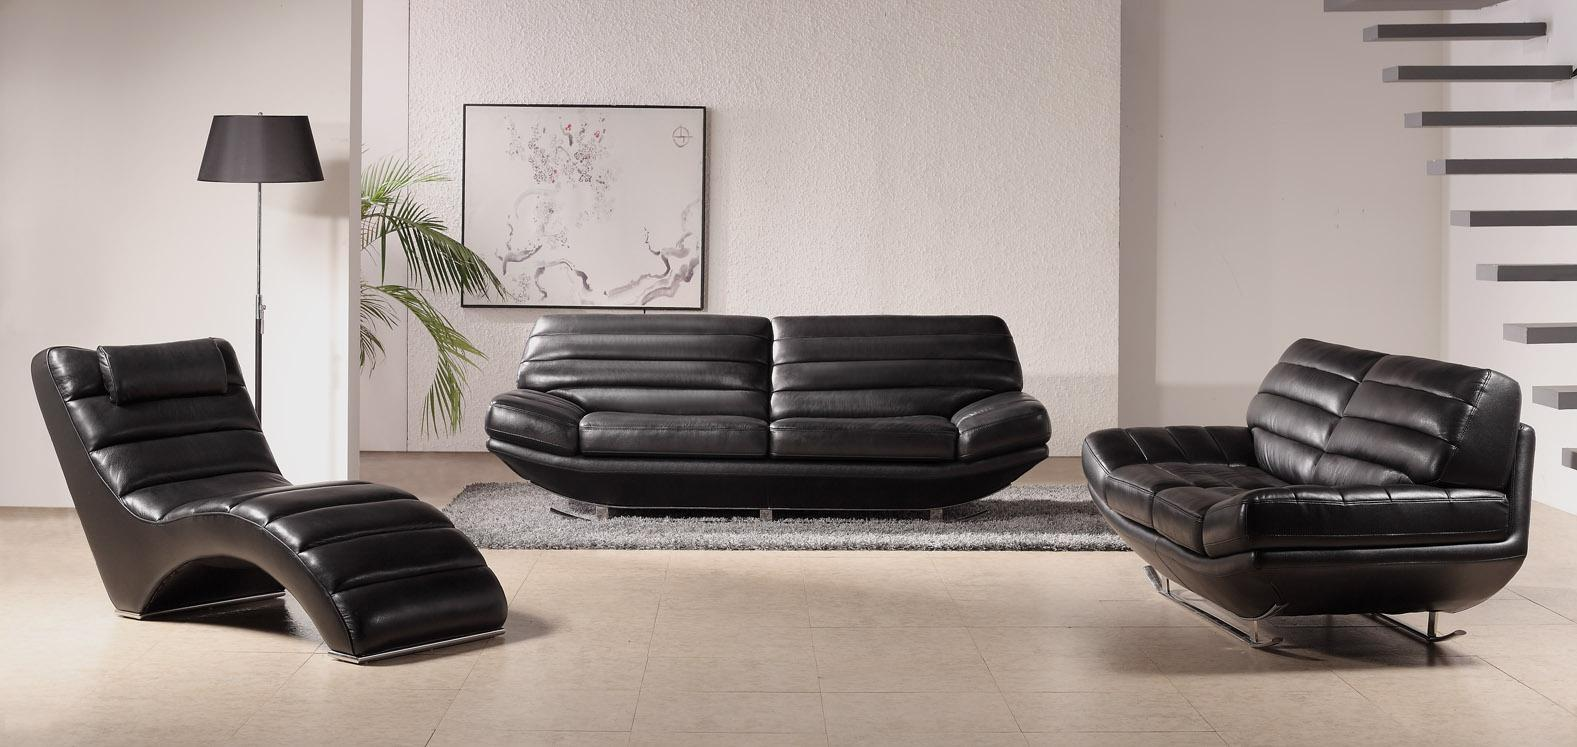 Incredible Sweet Deluxe Black Leather Sofa Set For Living Room My Andrewgaddart Wooden Chair Designs For Living Room Andrewgaddartcom